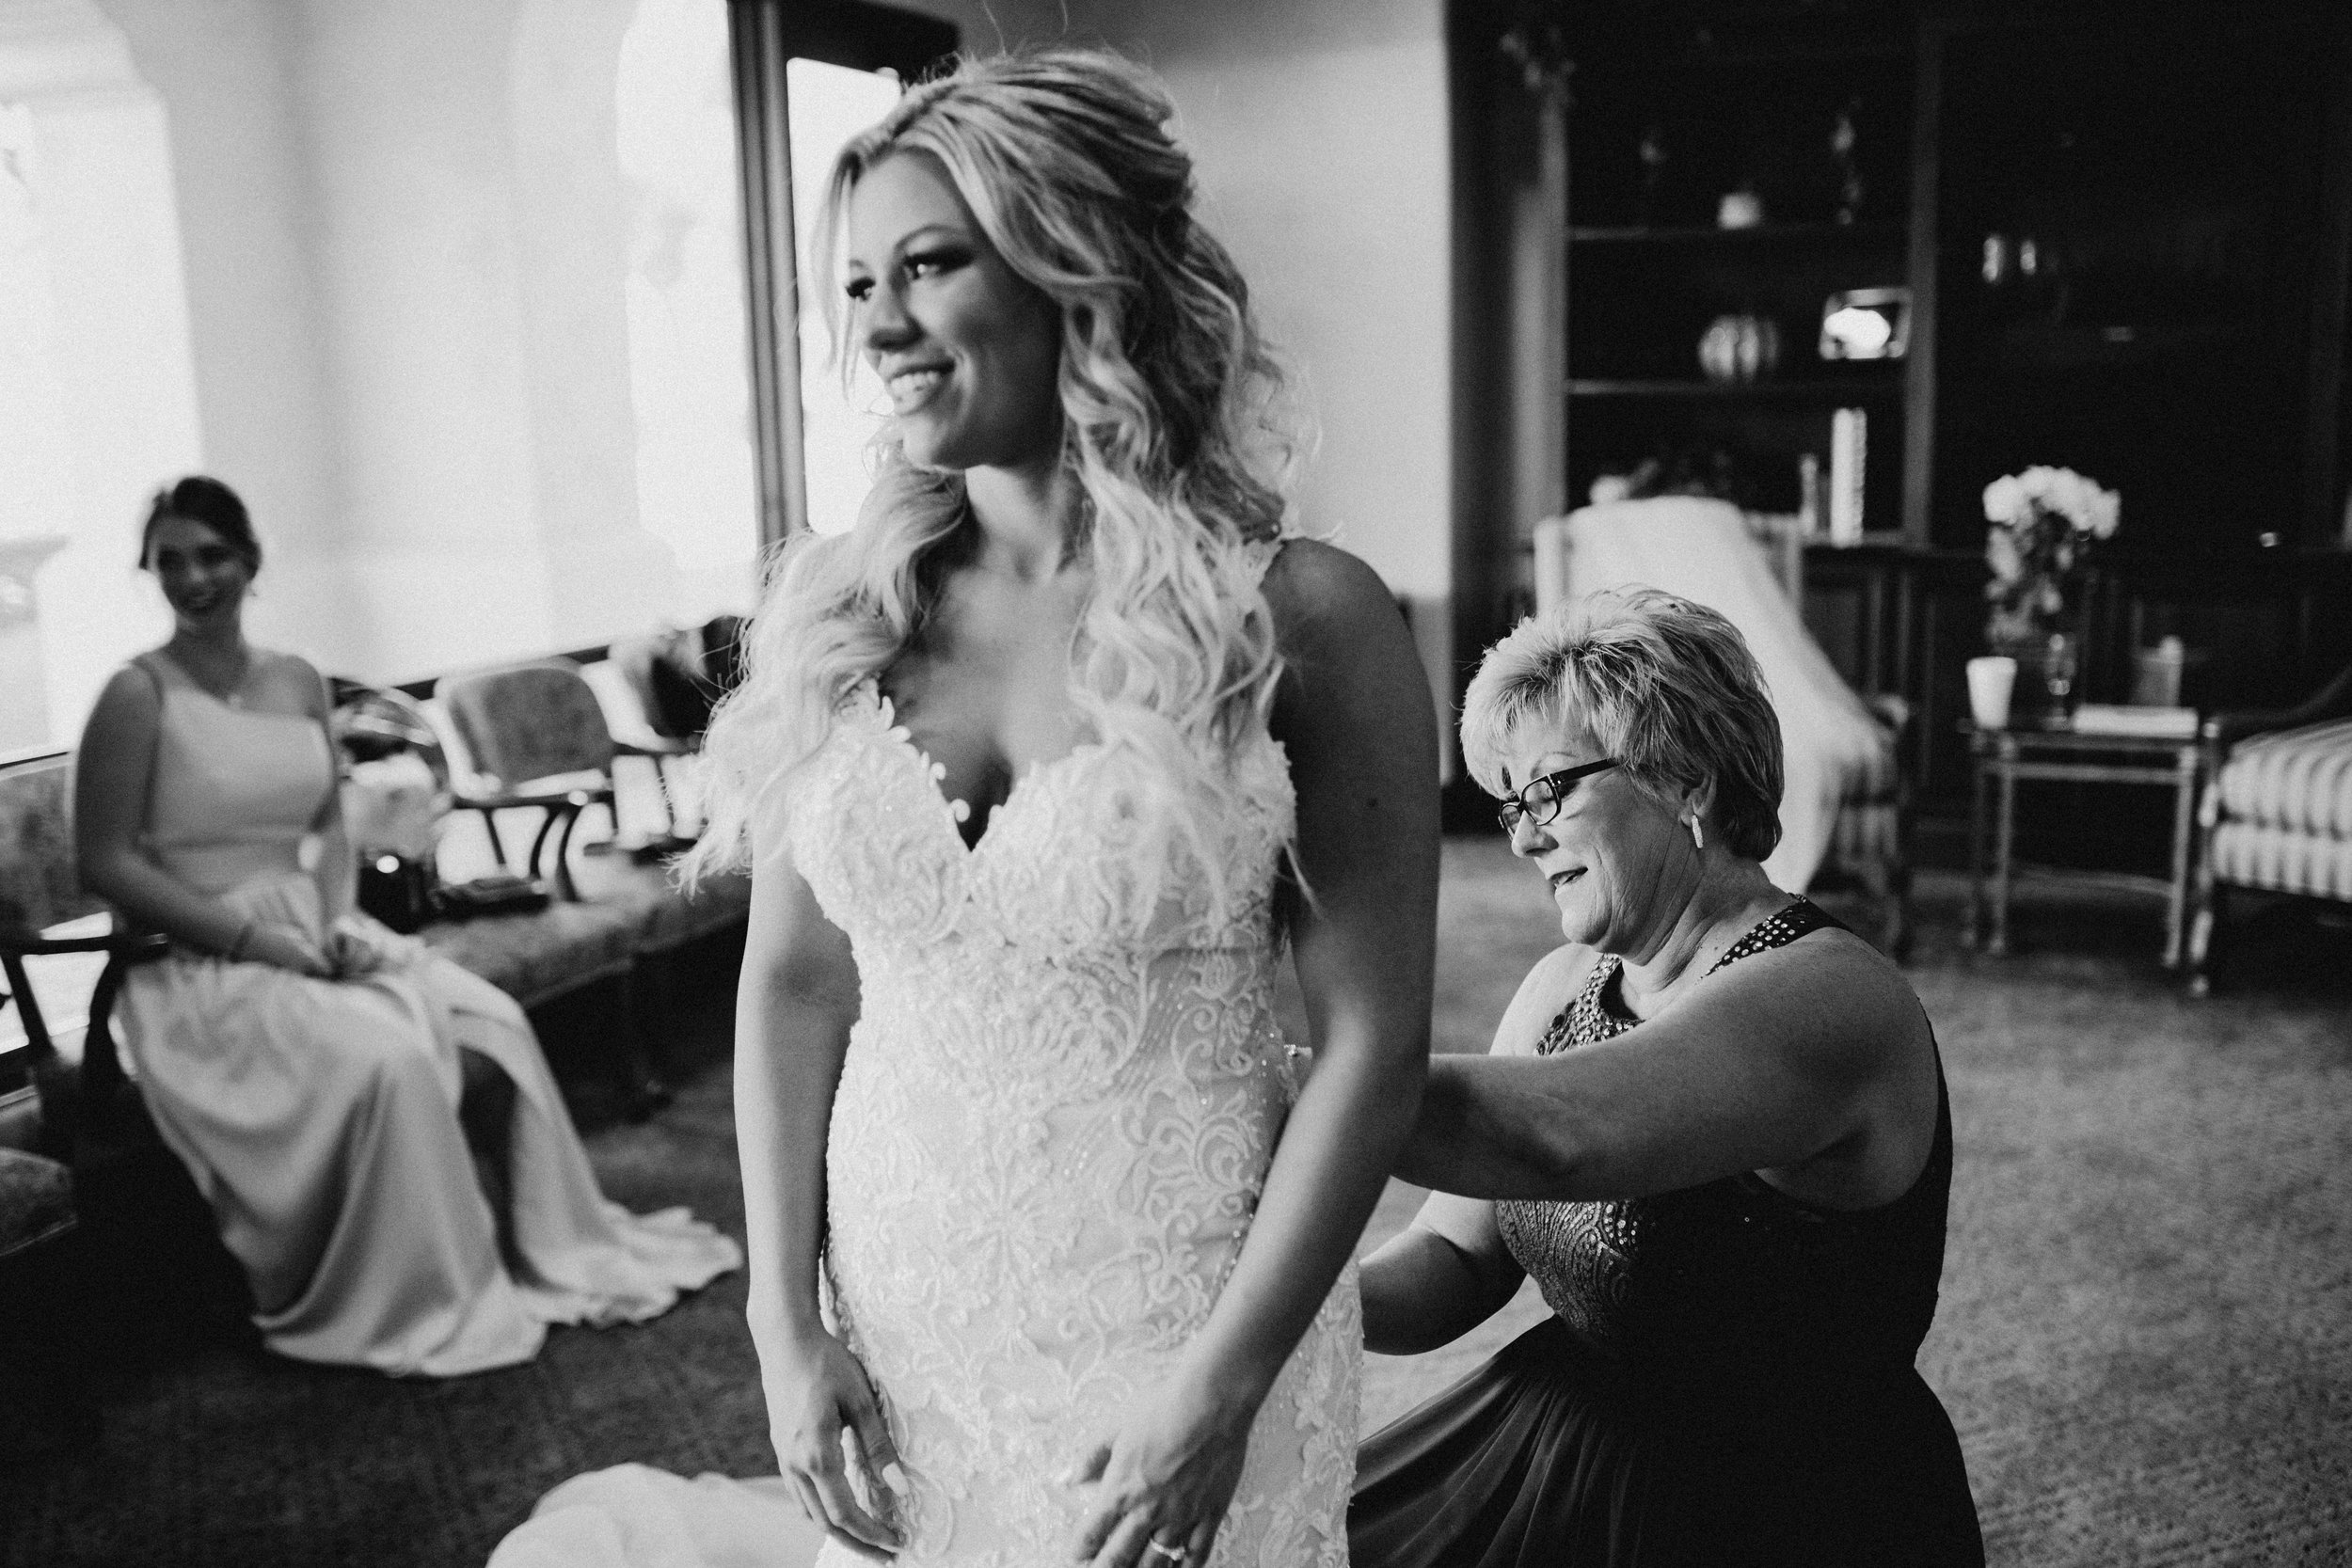 DianaLakePhoto-A+C-Wedding-GettingReady_75.jpg